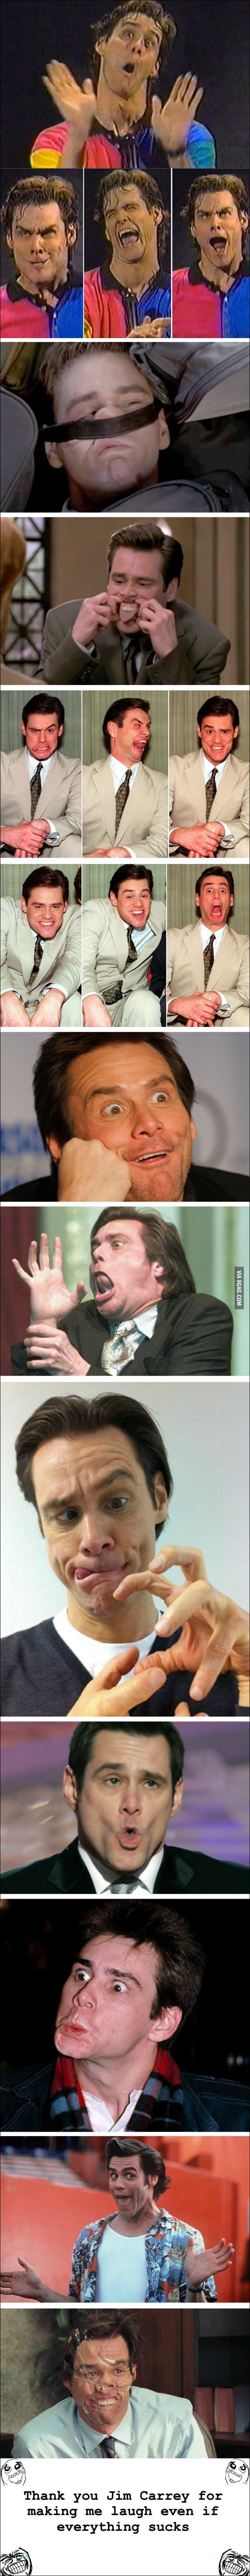 Jim Carrey Emotions